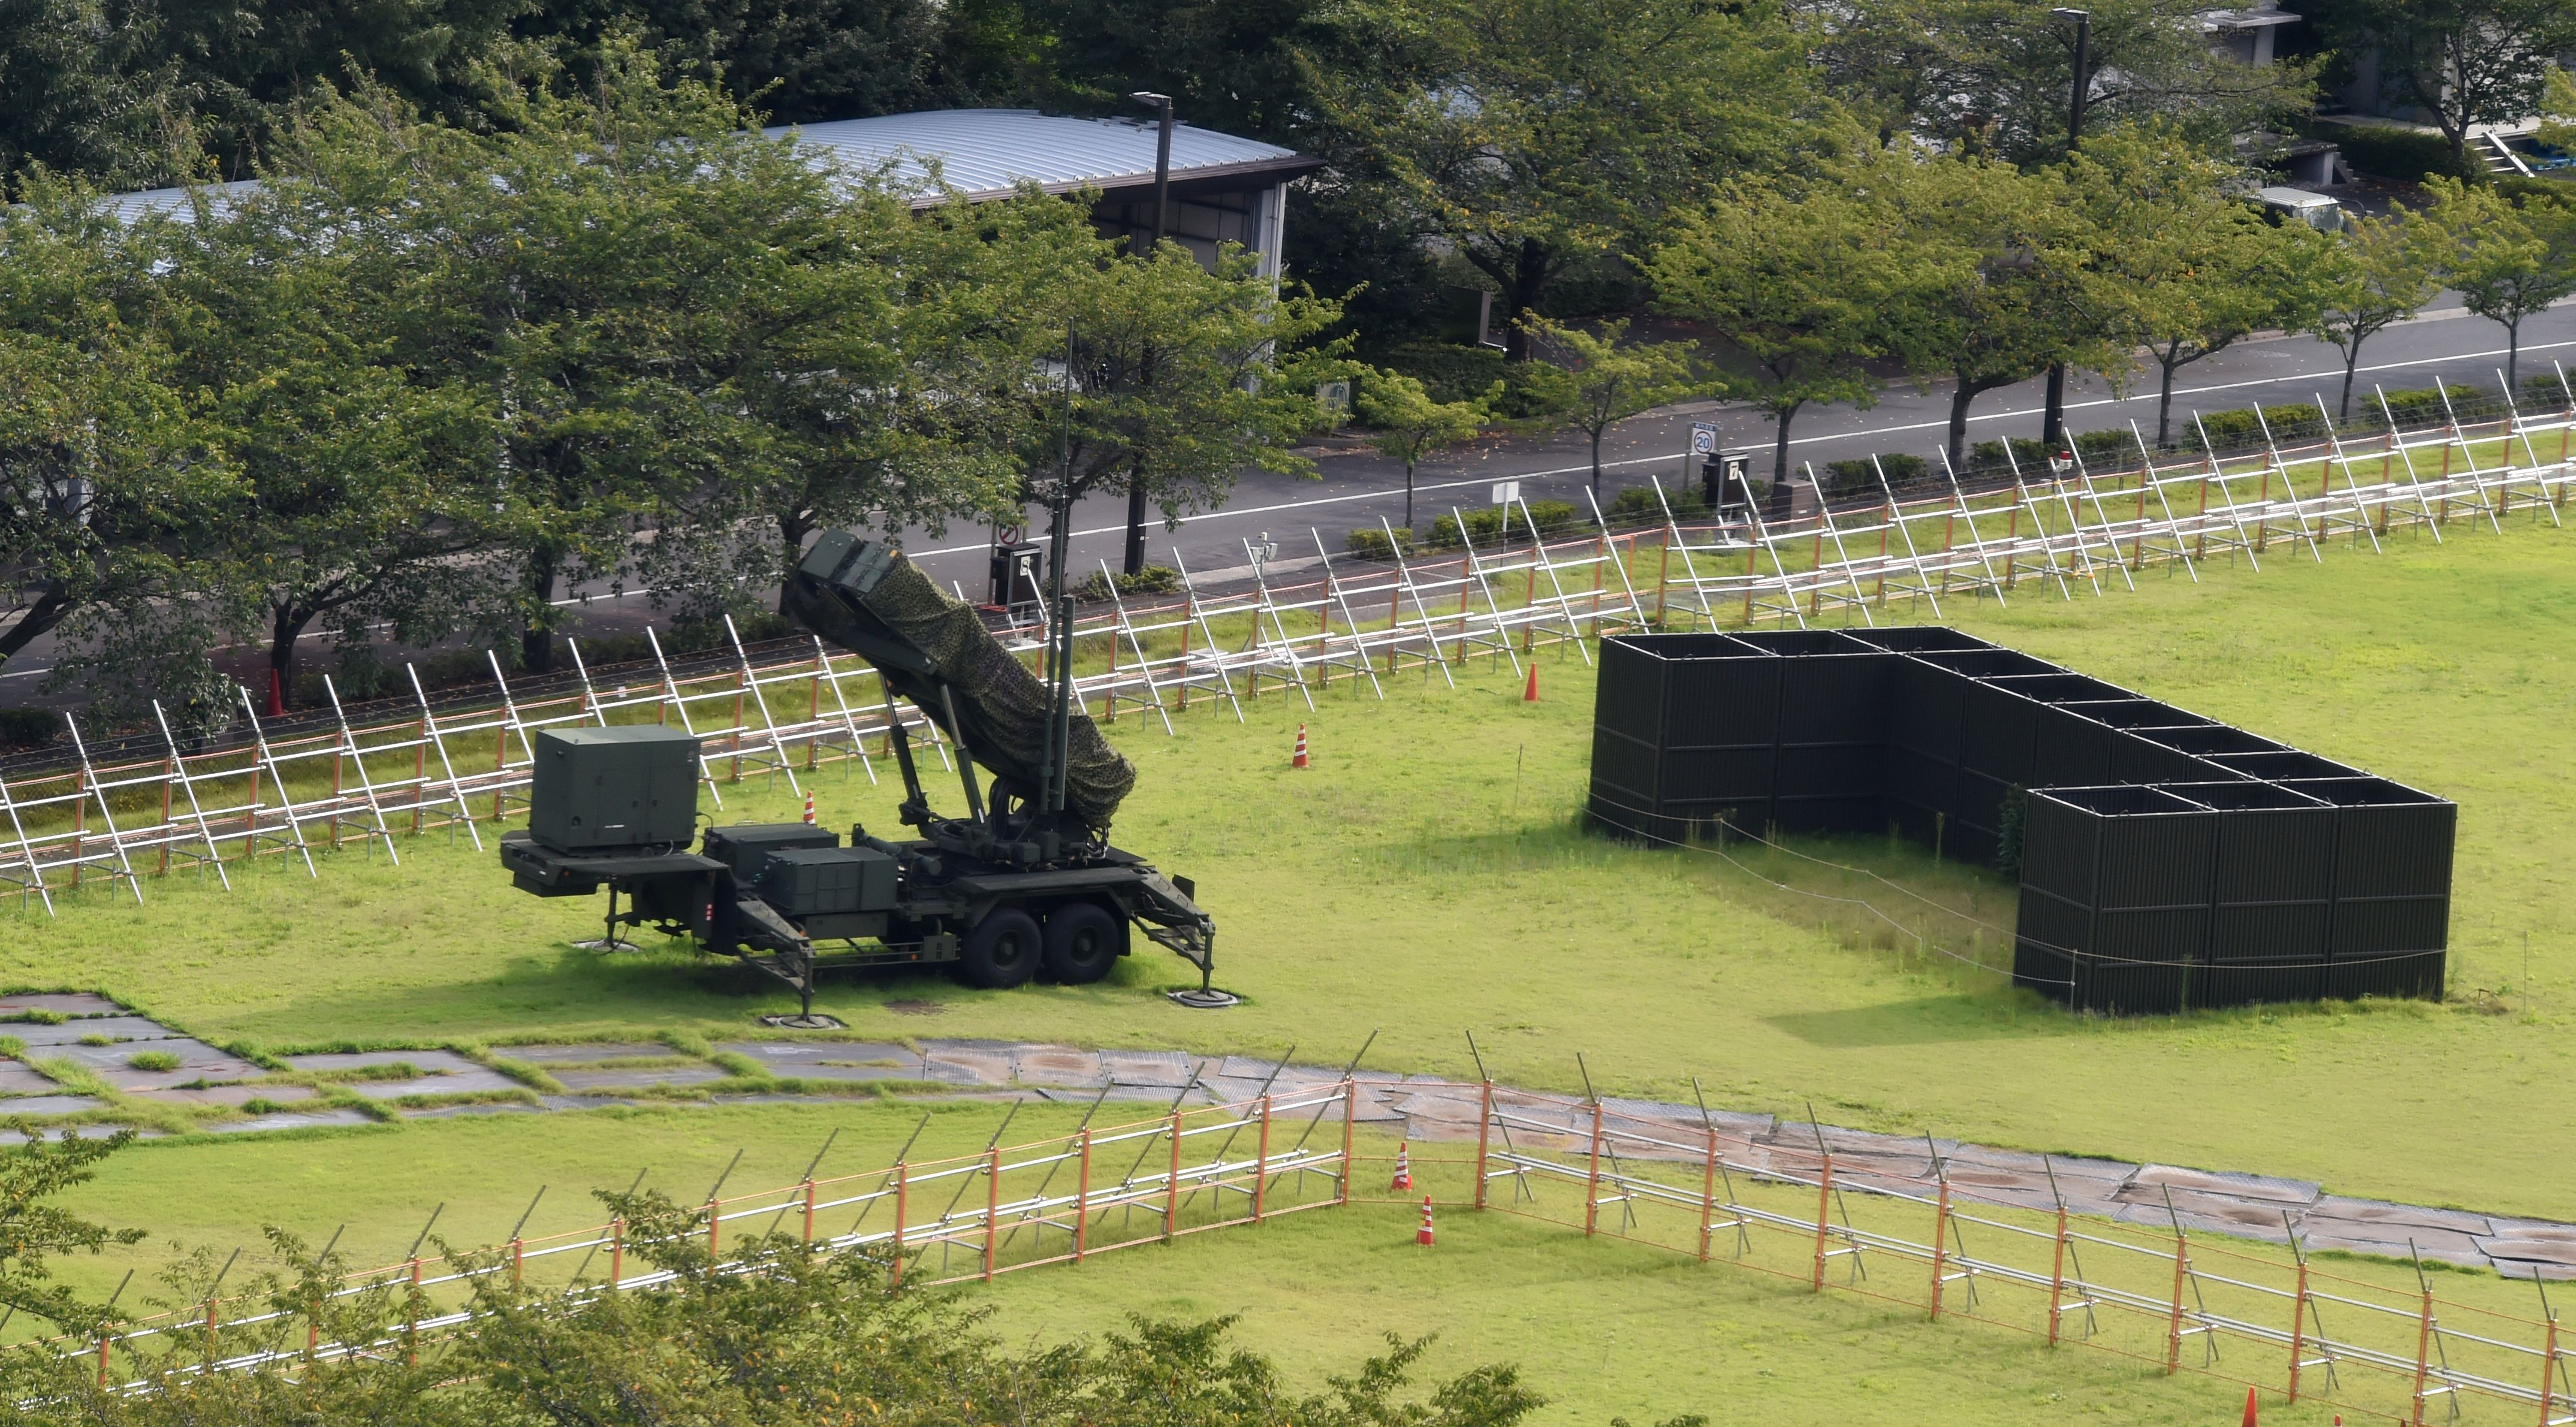 A Japanese Self-Defence Force Patriot Advanced Capability-3 (PAC-3) missile launcher is seen at its position in the Defence Ministry headquarters in Tokyo on September 15, 2017. North Korea launched a ballistic missile over Japan on September 15, which seems to have fallen on the Pacific Ocean, the Japanese government said in its official alert system. (TOSHIFUMI KITAMURA/AFP/Getty Images)